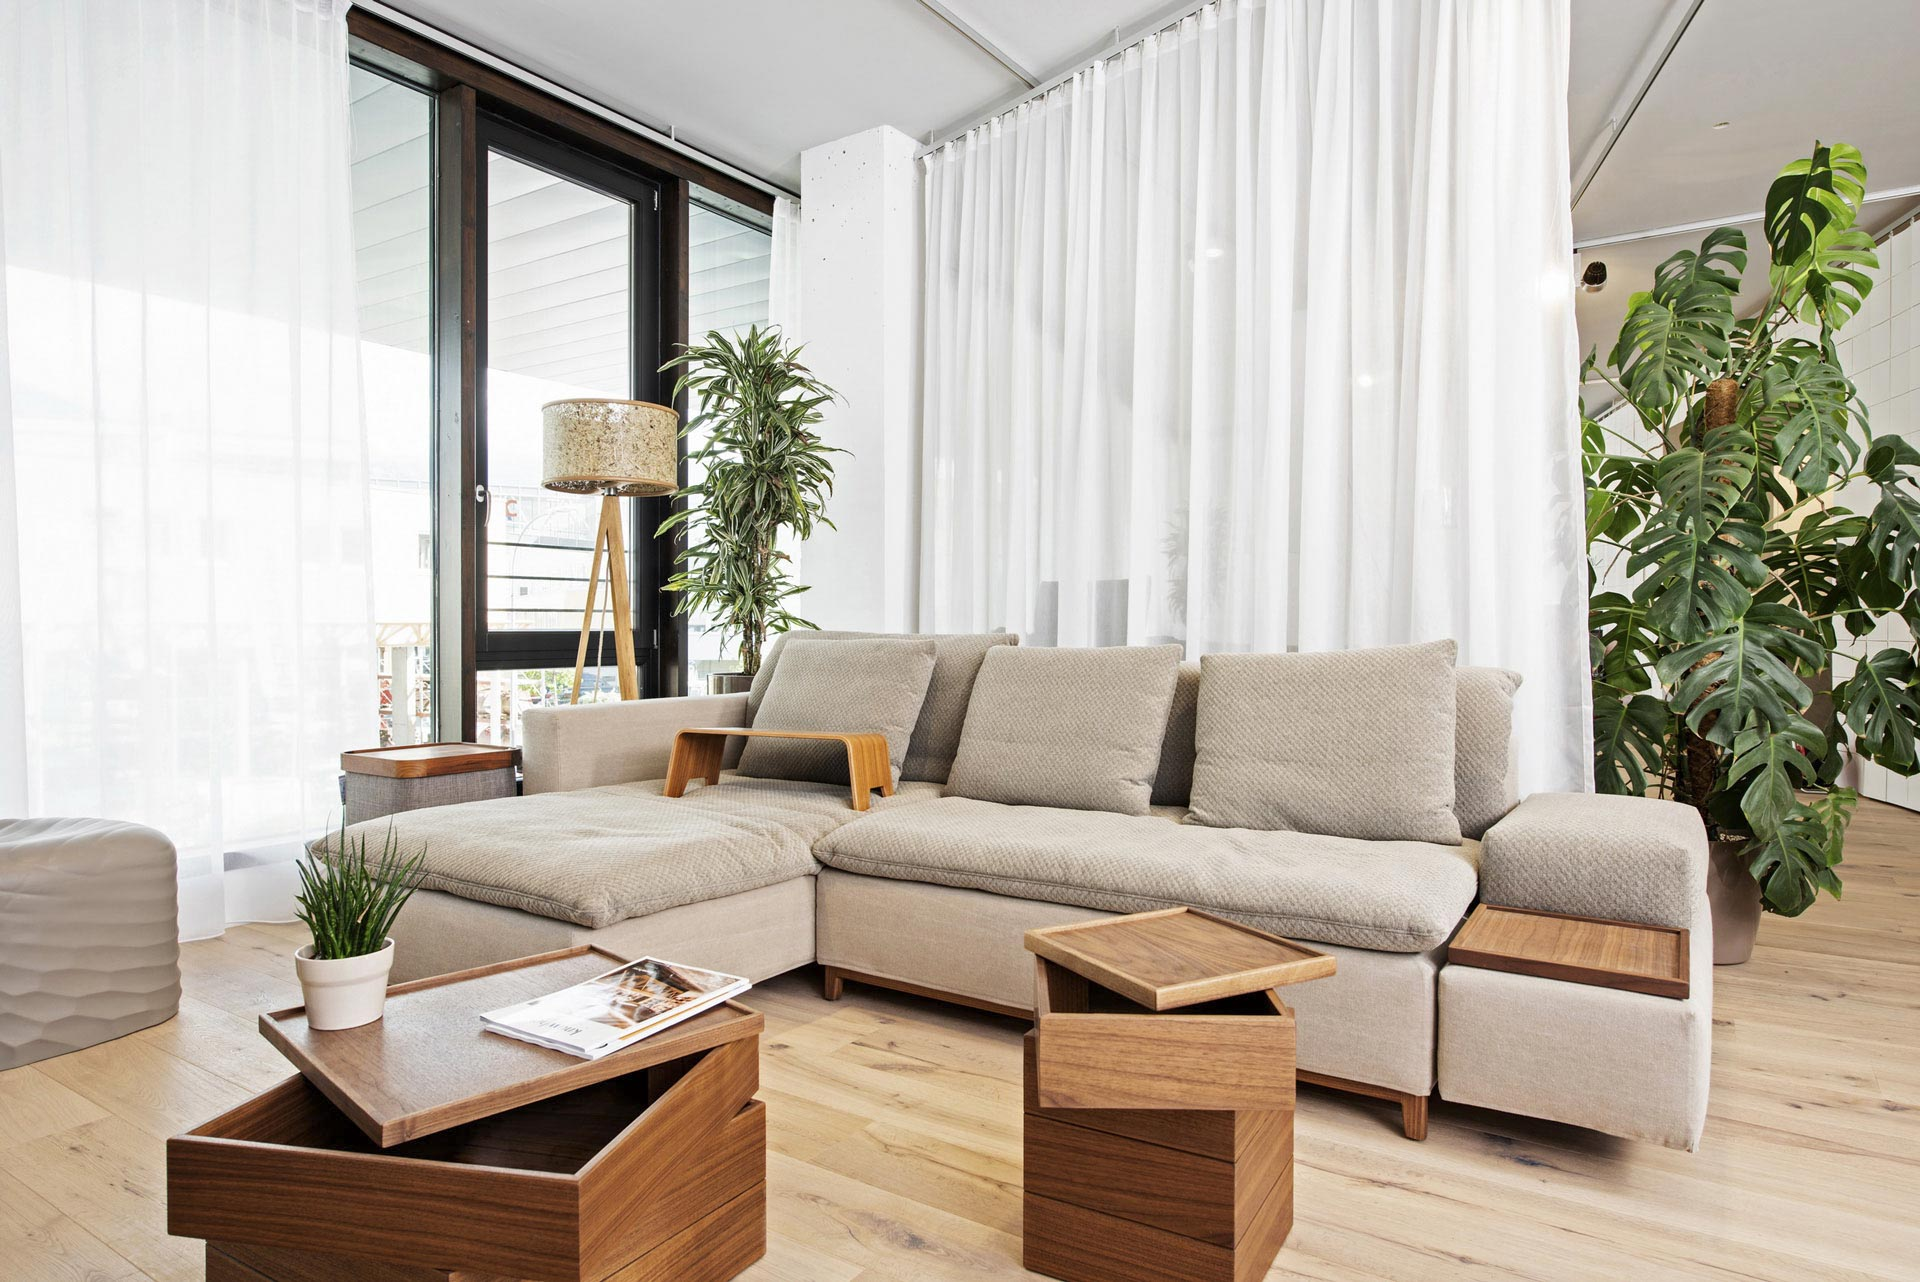 couchzone - Interior Design Innsbruck - Sofa